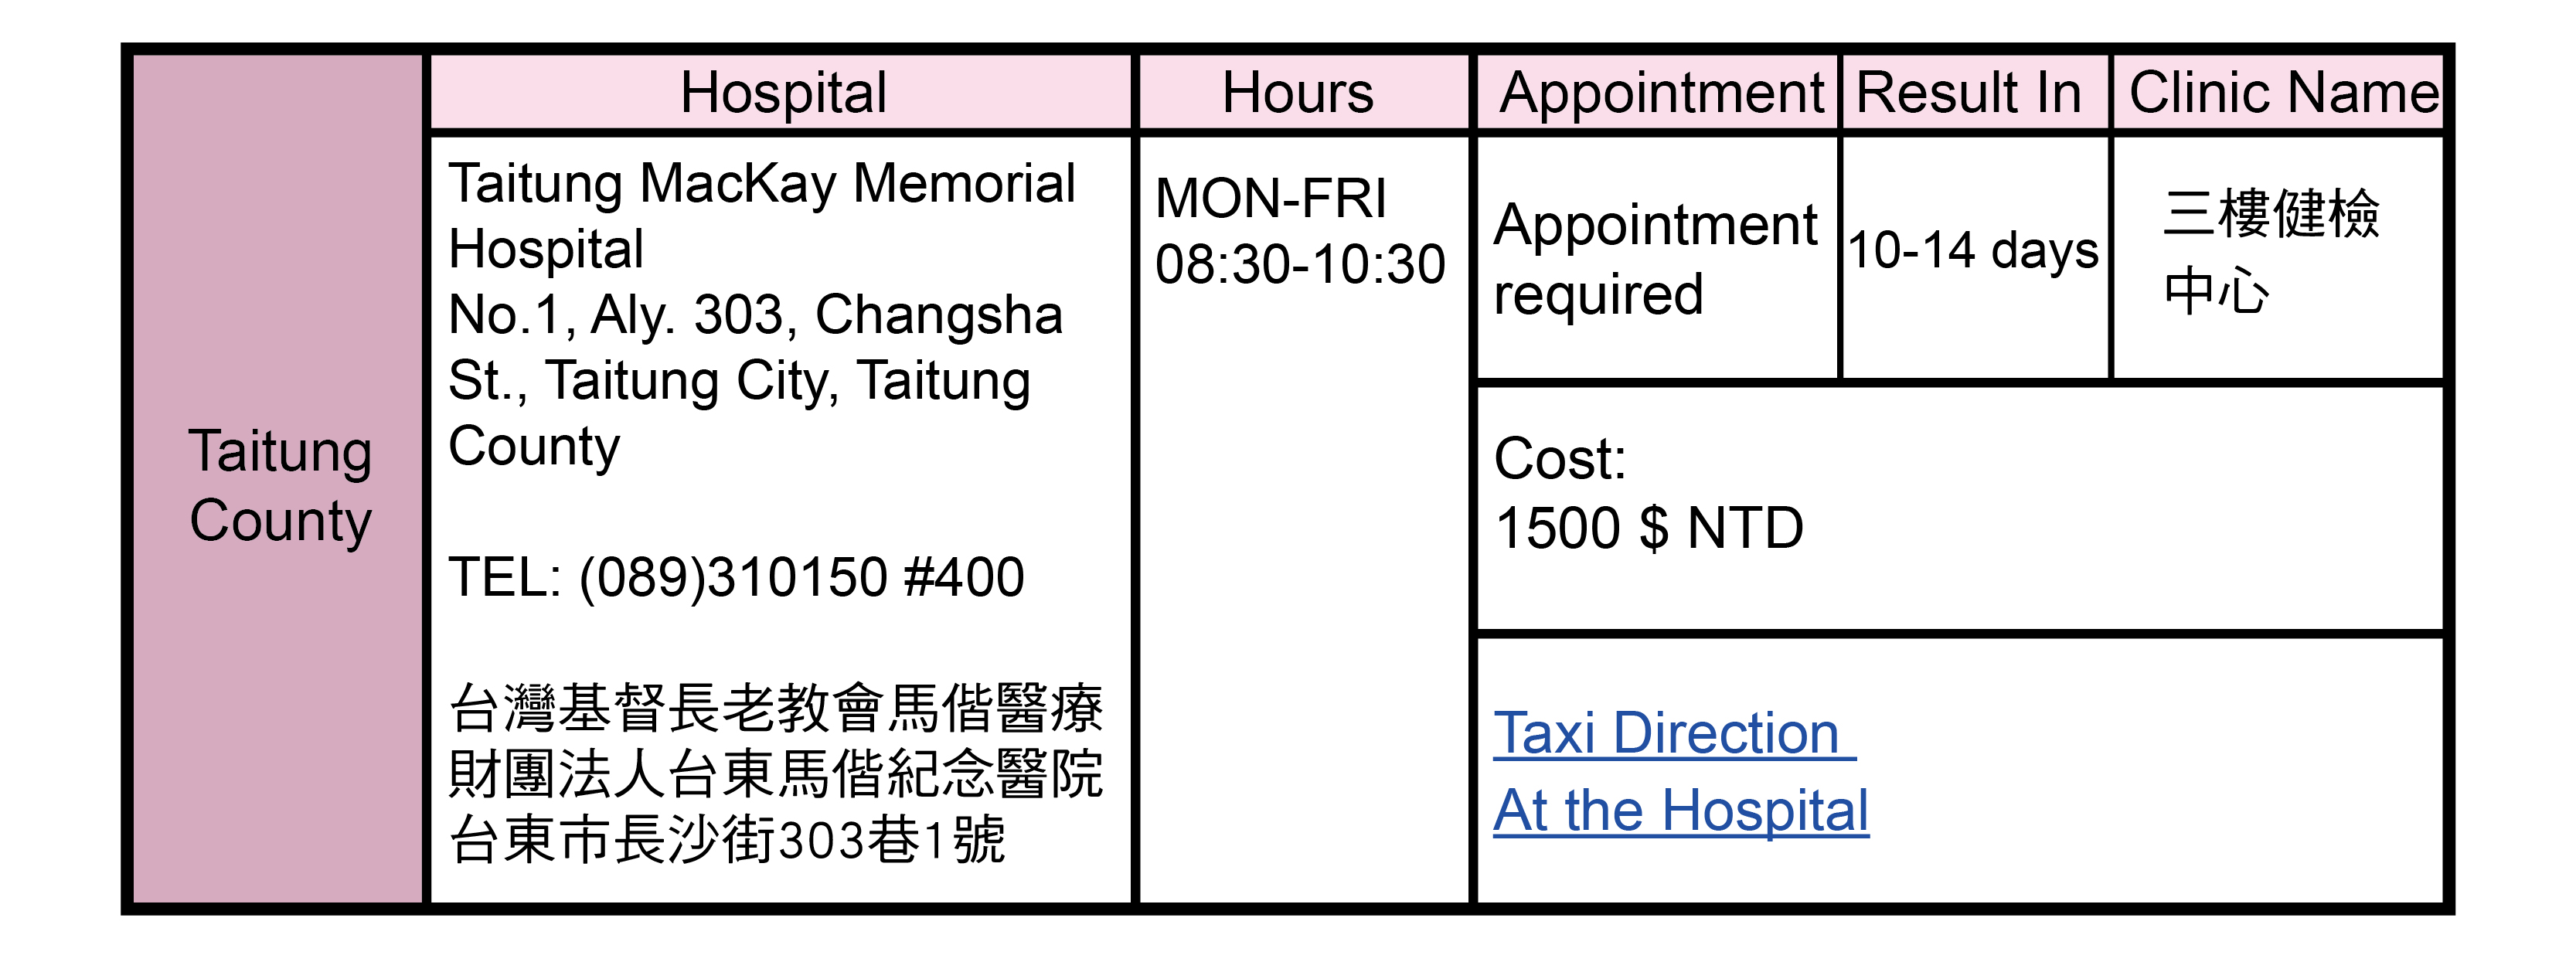 Taitung County, Taiwan Health Check Hospitals Addresses